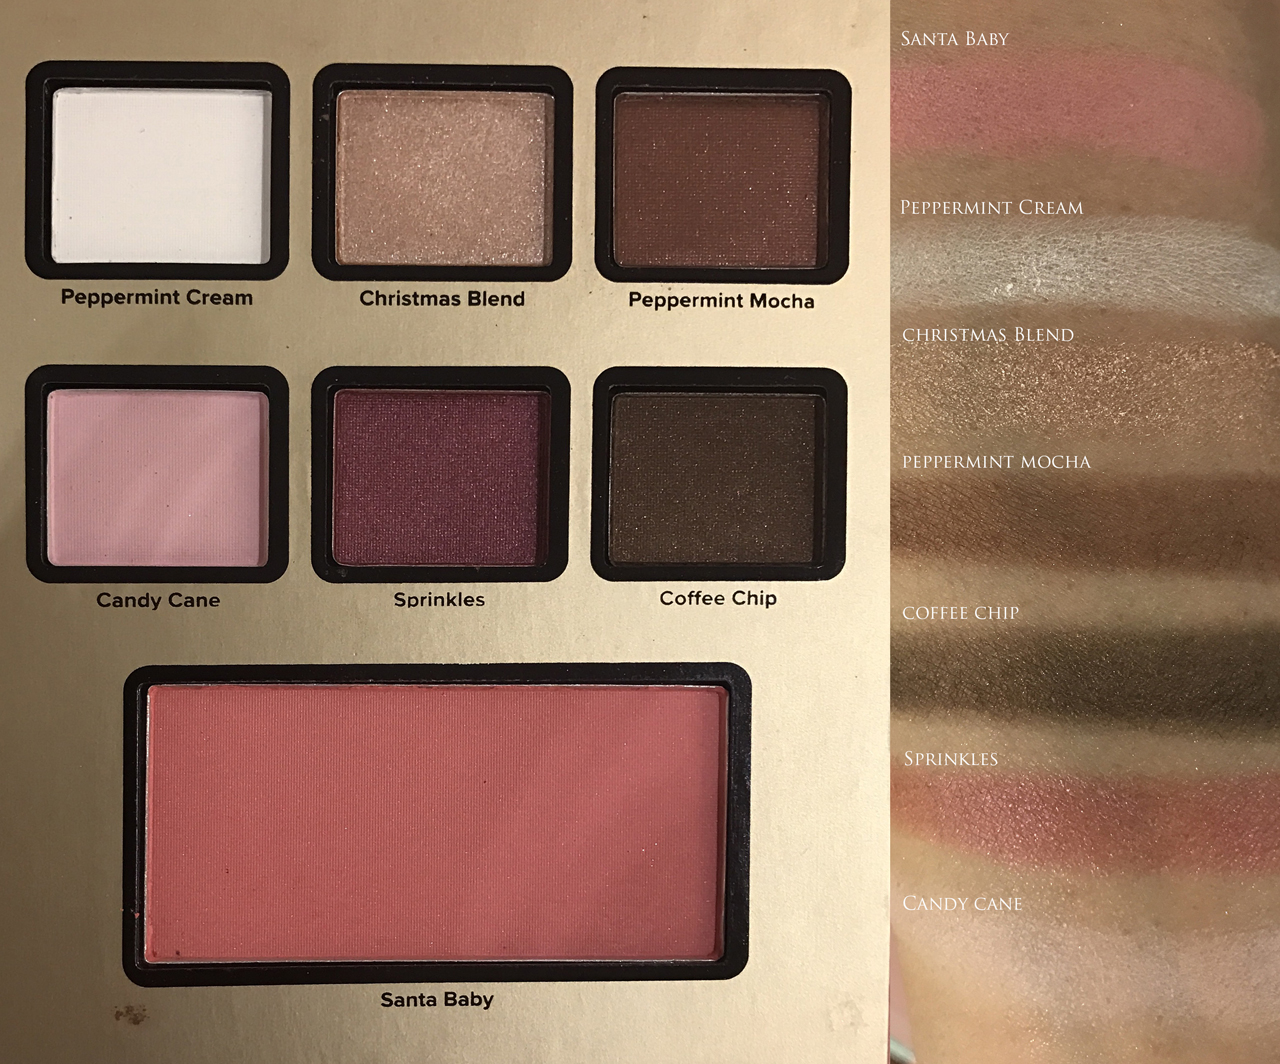 Too Faced Grand Hotel Cafe - Peppermint Mocha for Holiday 2016